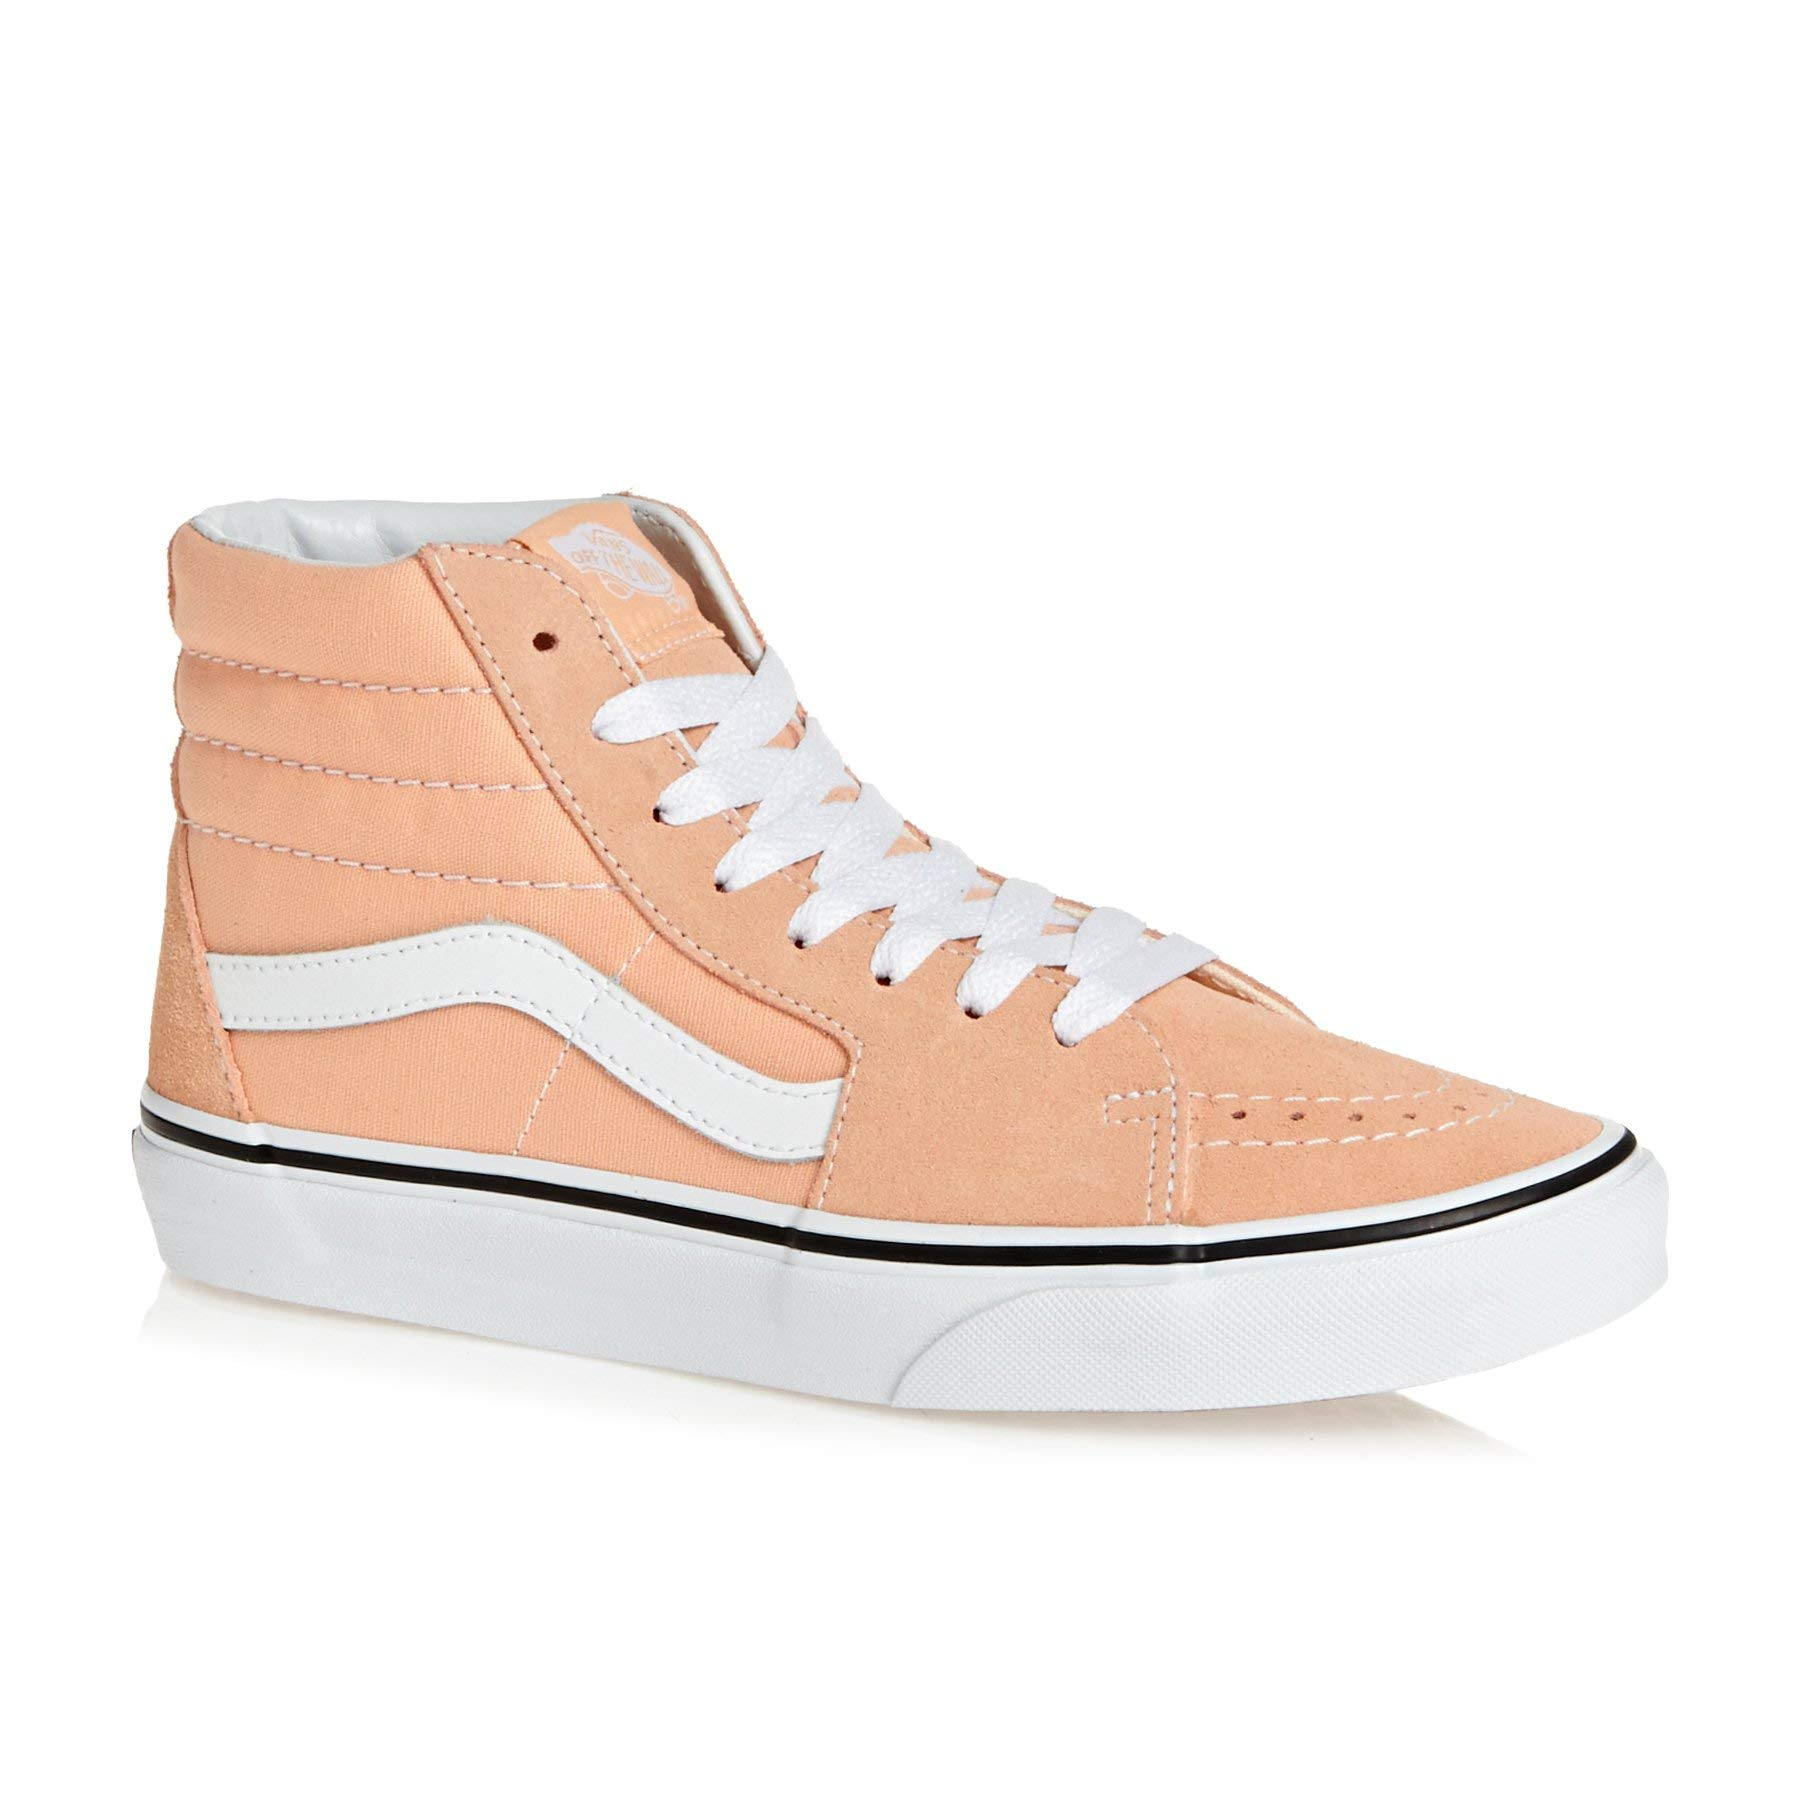 b3e53b1d70 Galleon - Vans Sk8 Hi Shoes 10.5 B(M) US Women   9 D(M) US Bleached Apricot  True White